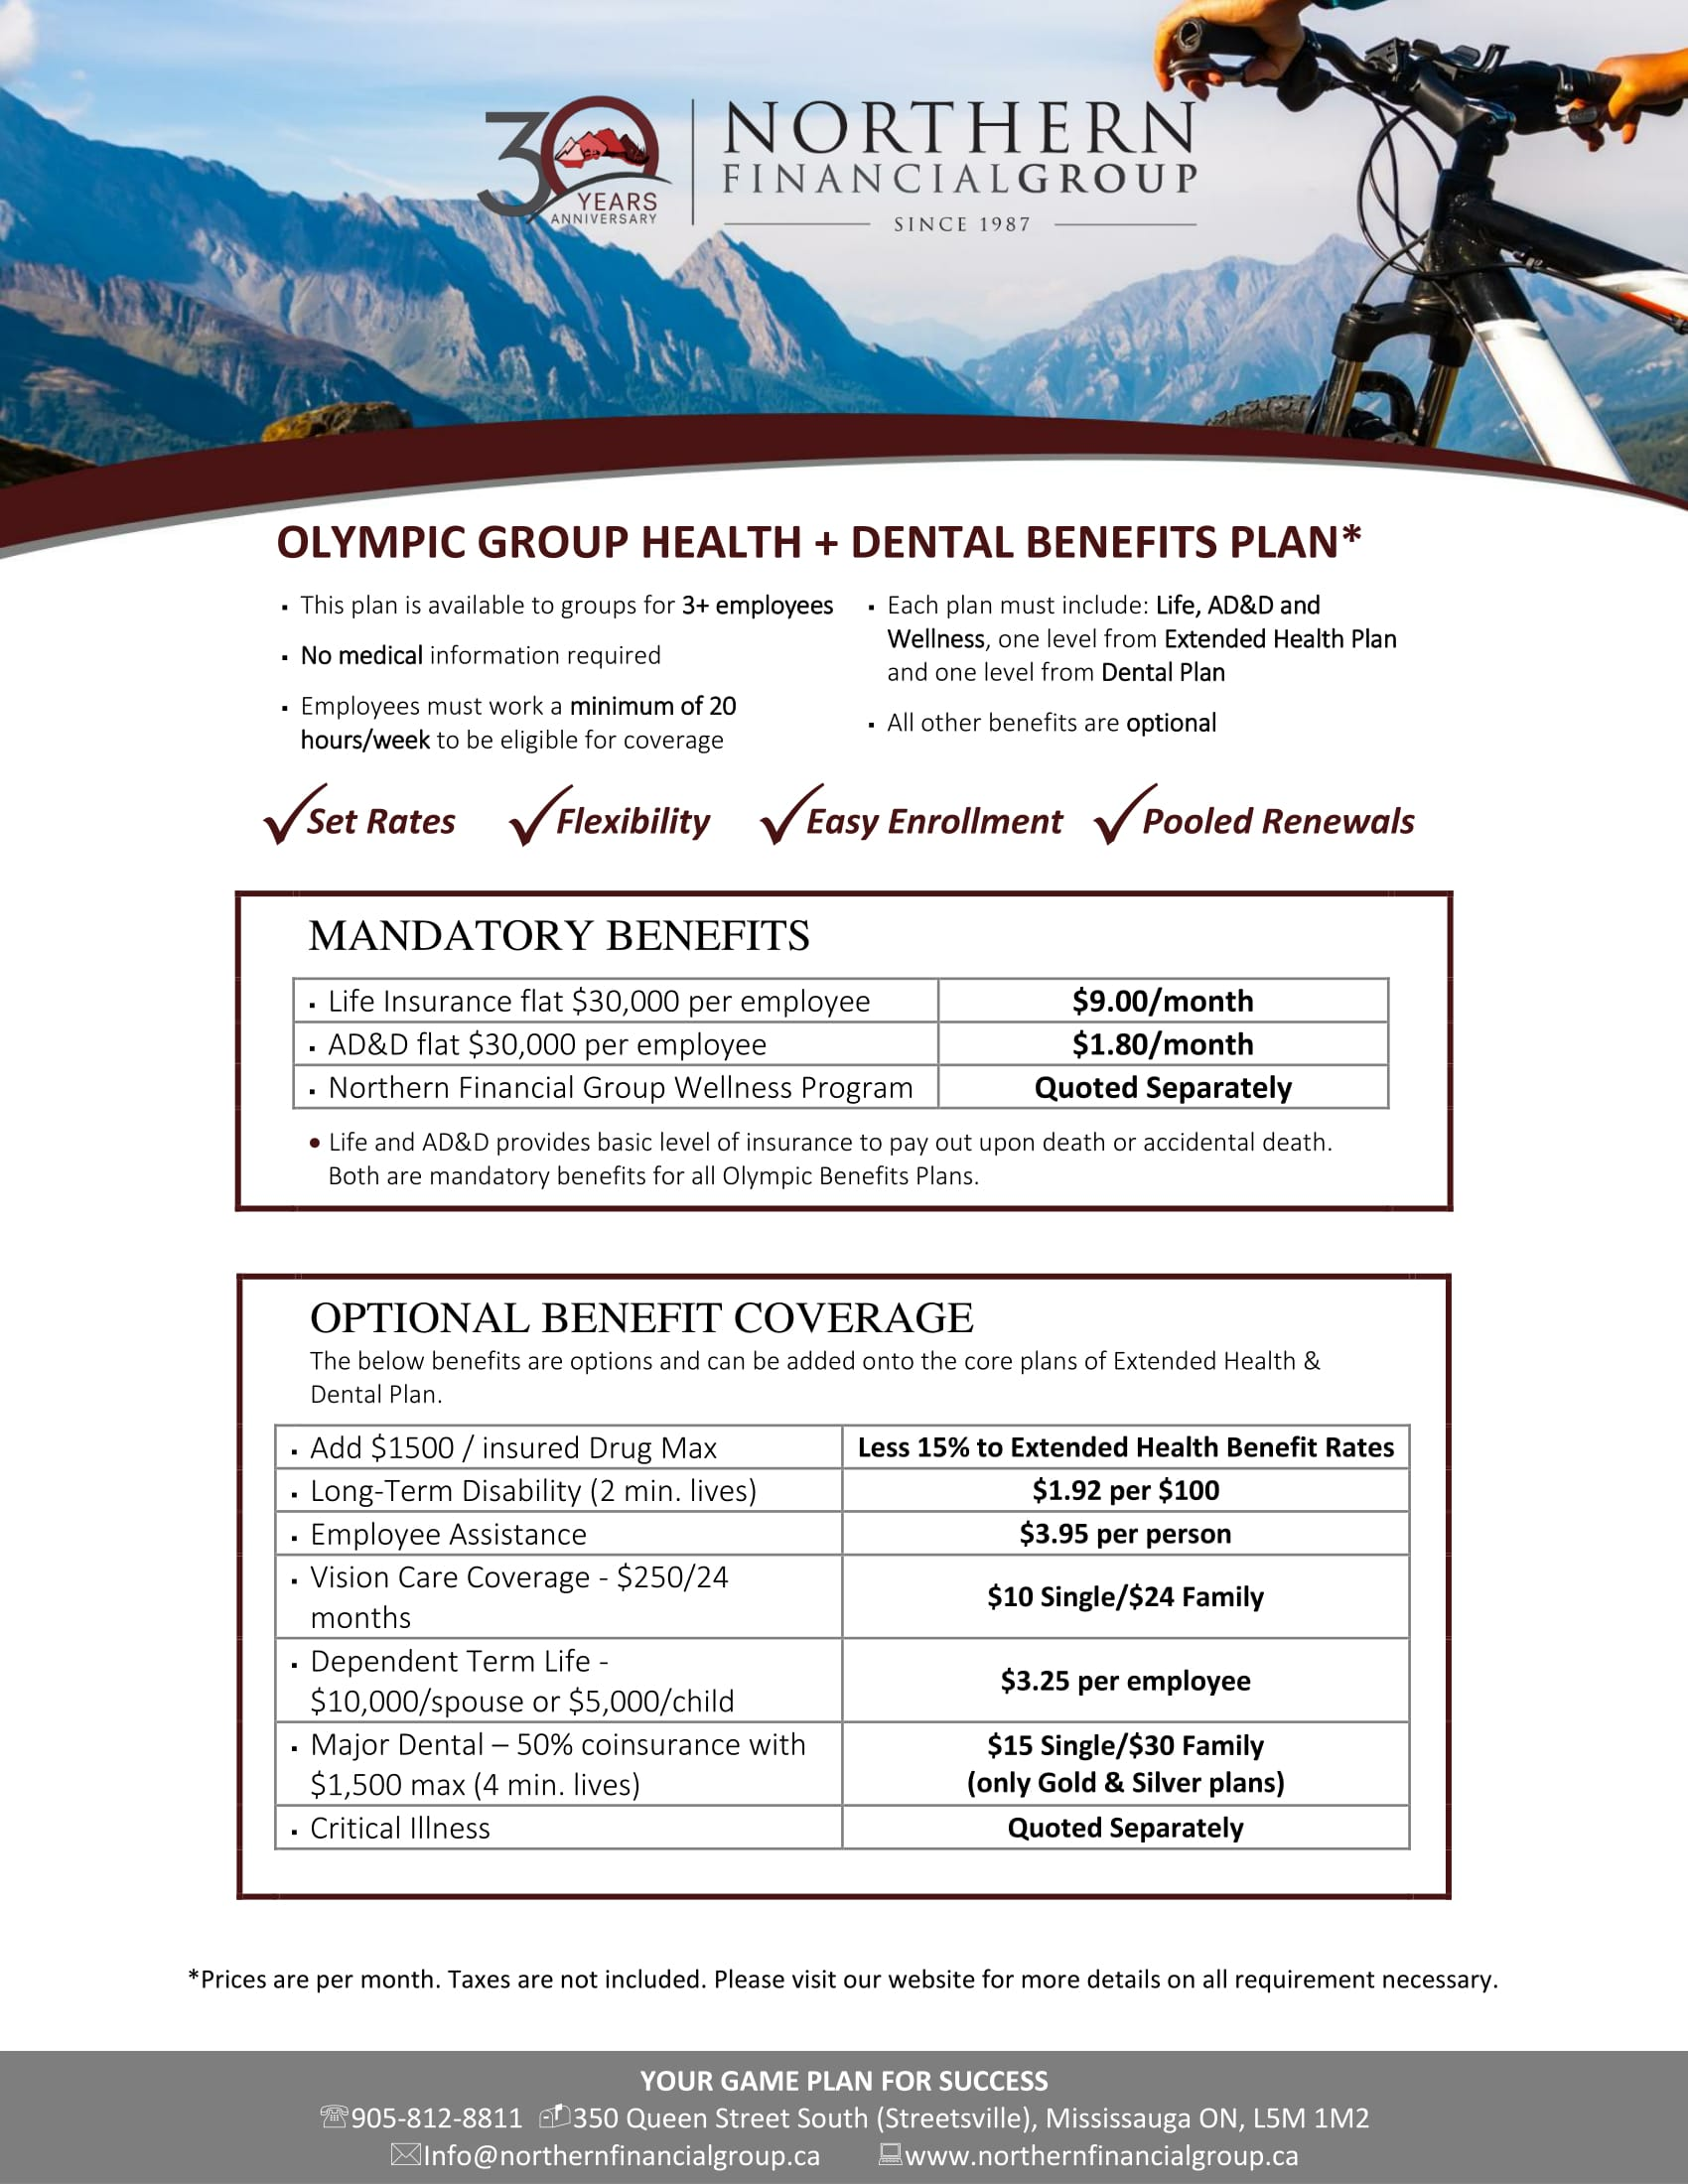 Olympic Group Benefits Plan Design Drug/Health Coverage and Dental Plans